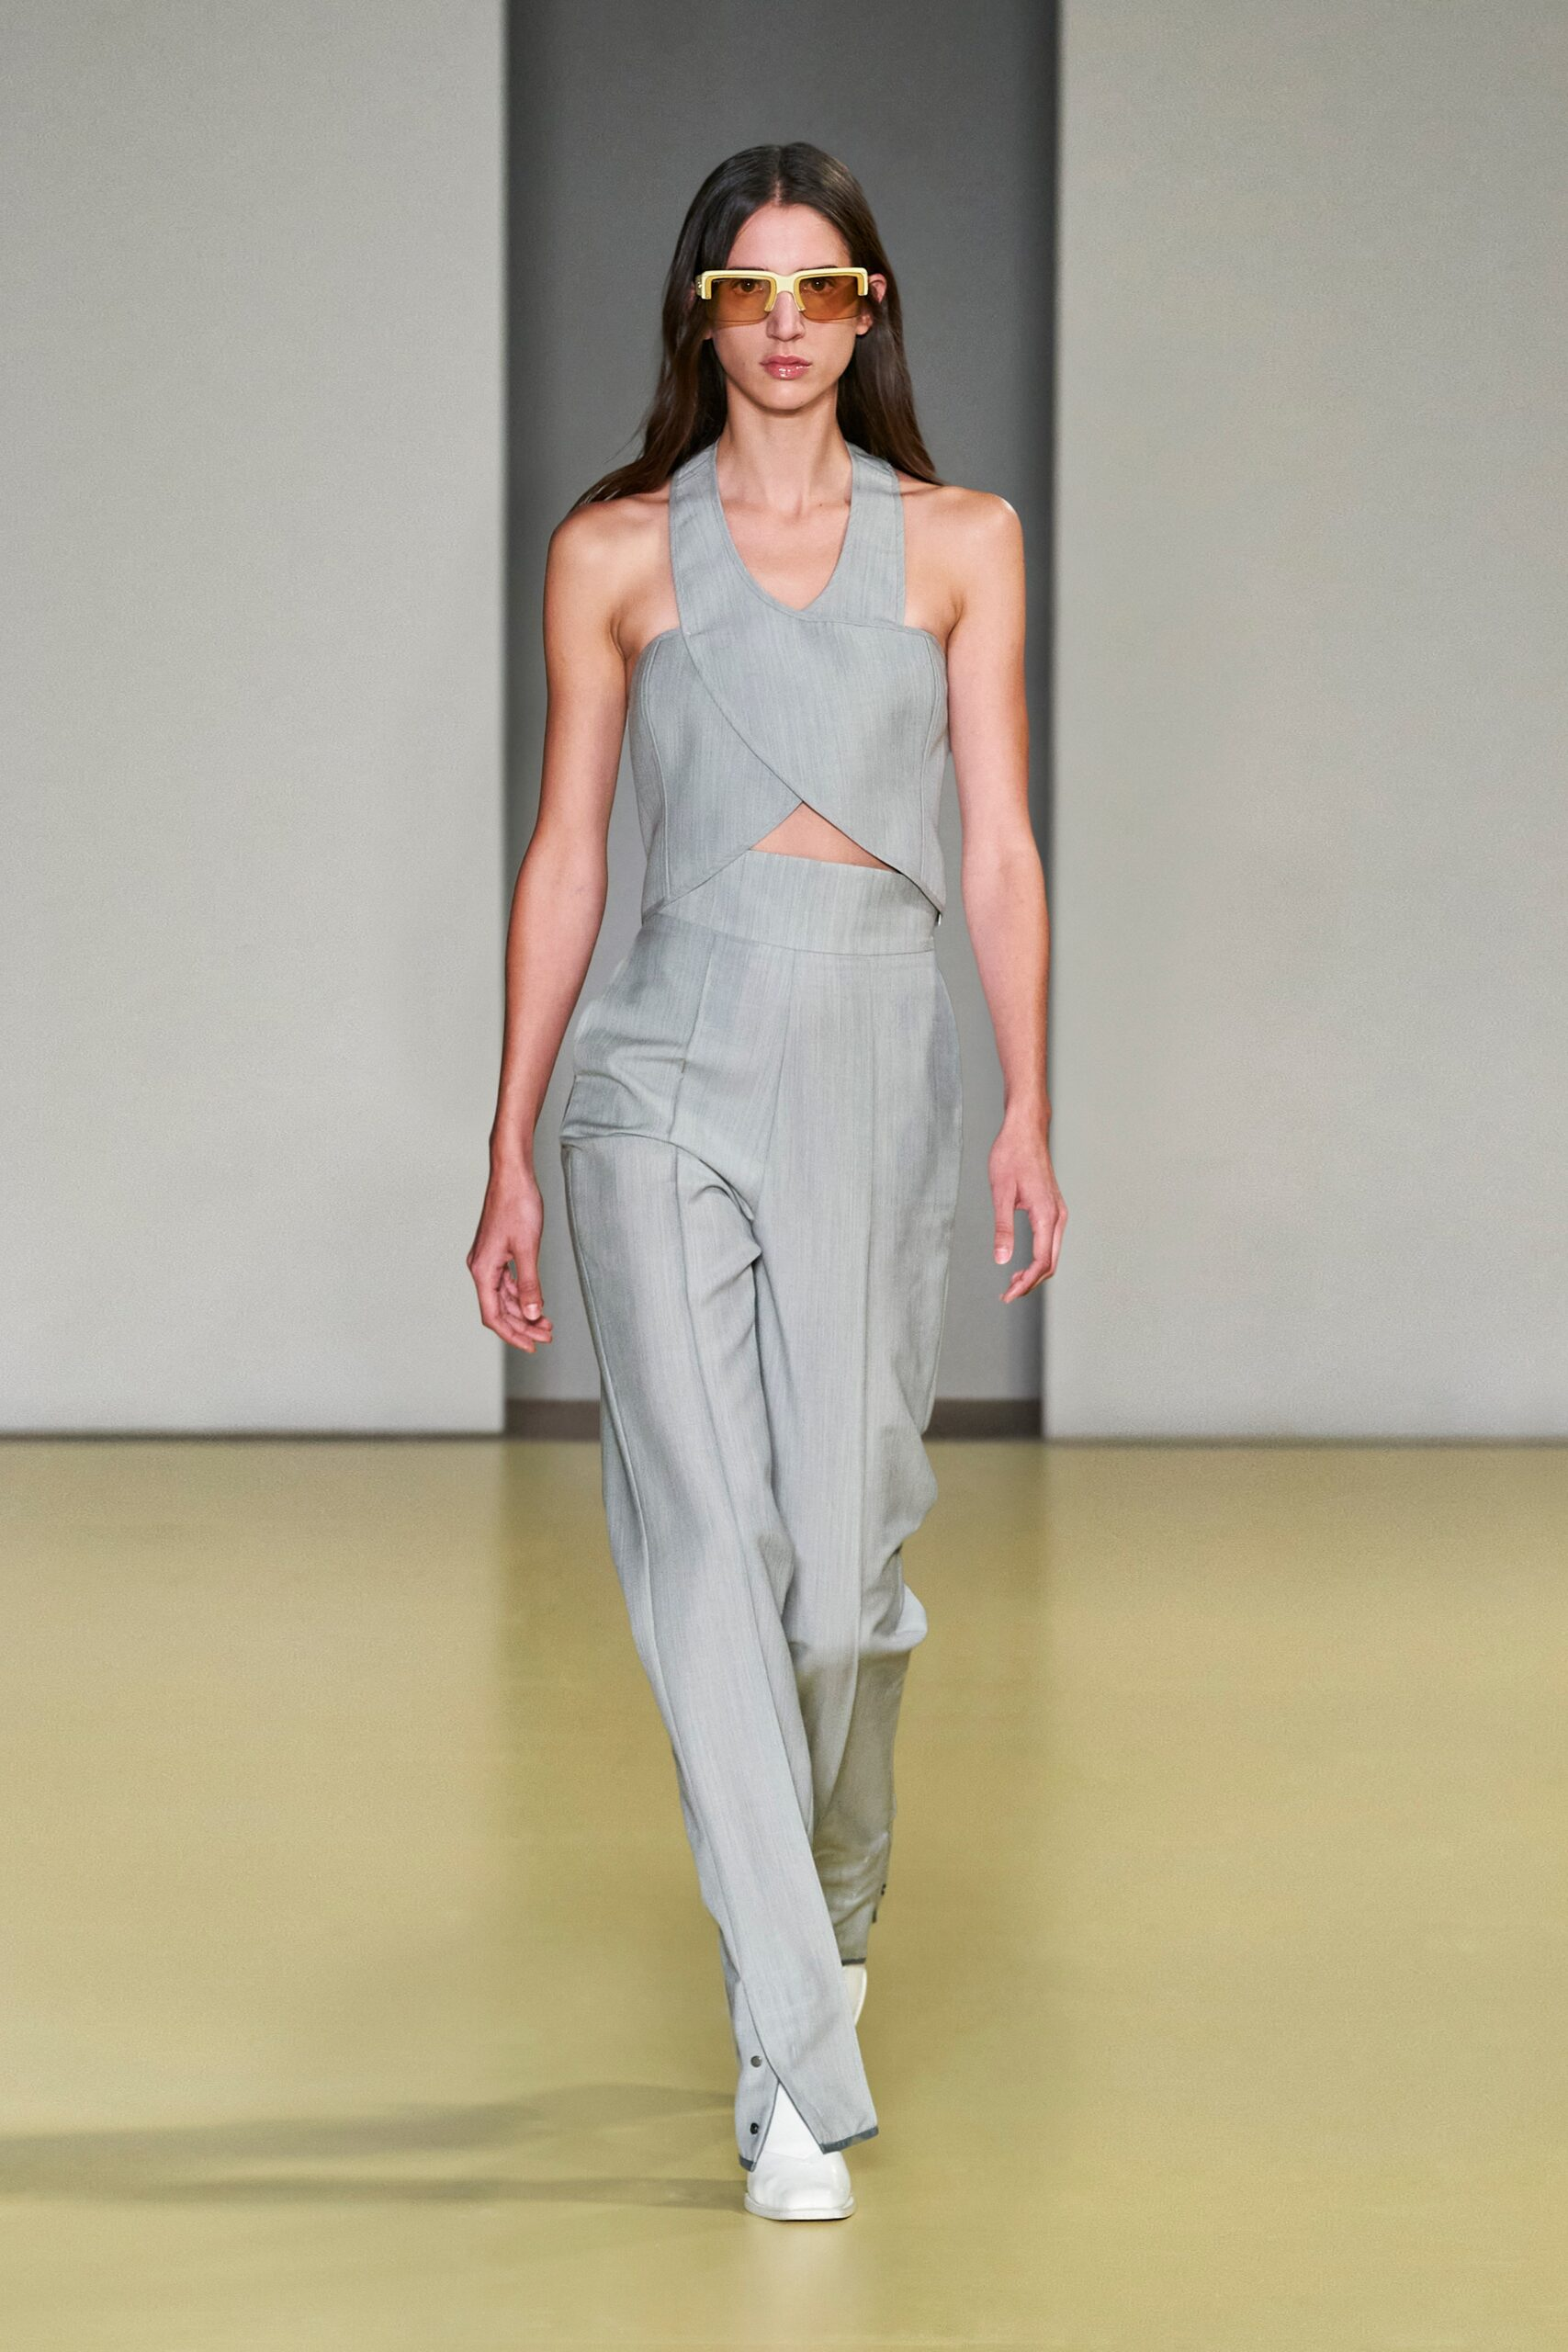 Grigio - Salvatore Ferragamo Ready-to-Wear Spring 2020